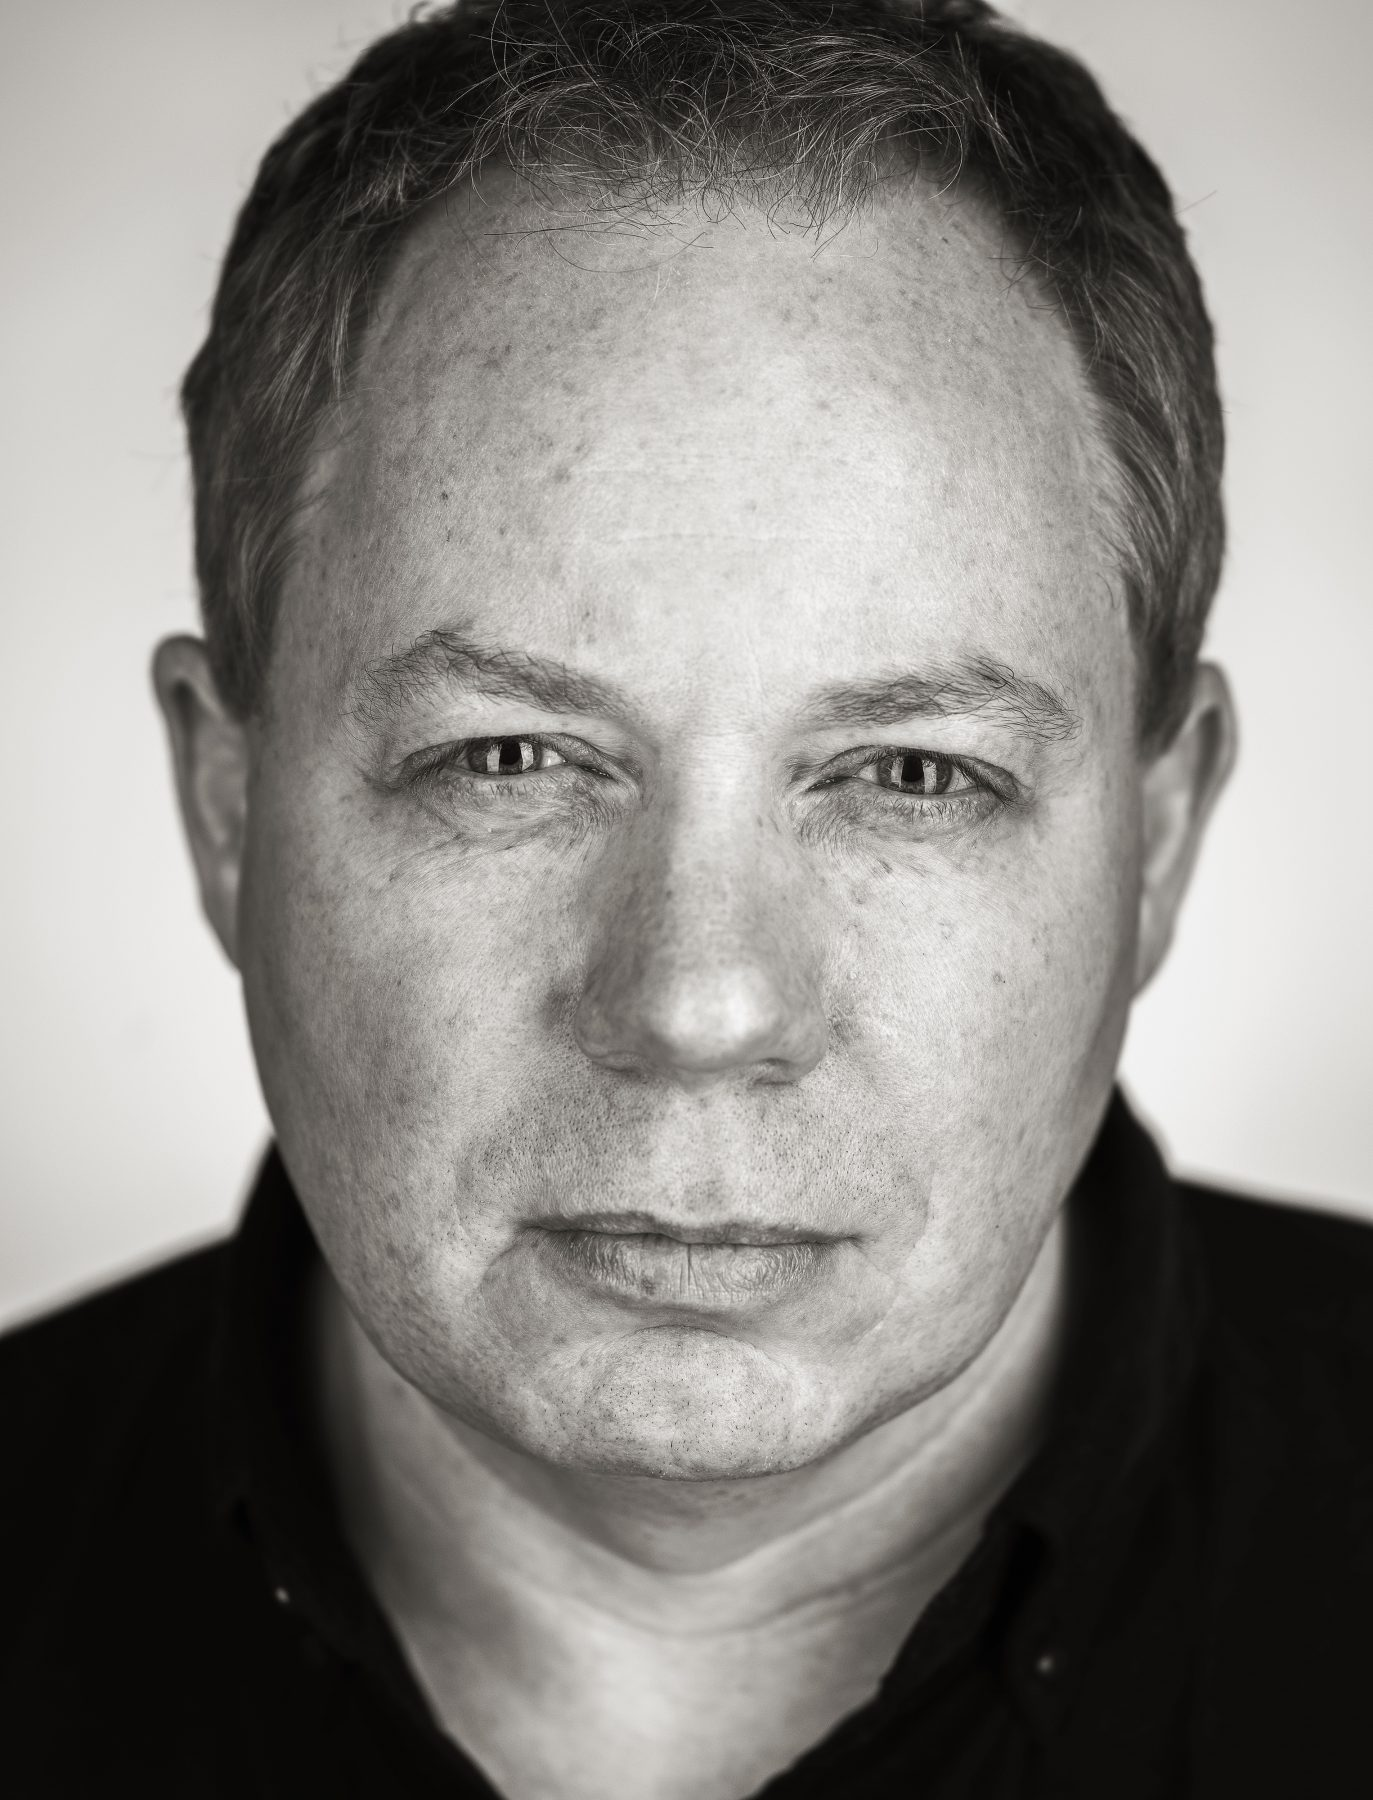 Martin Schoeller closeup portrait style photography with Hasselblad H4D 40, Montreal headshot photography